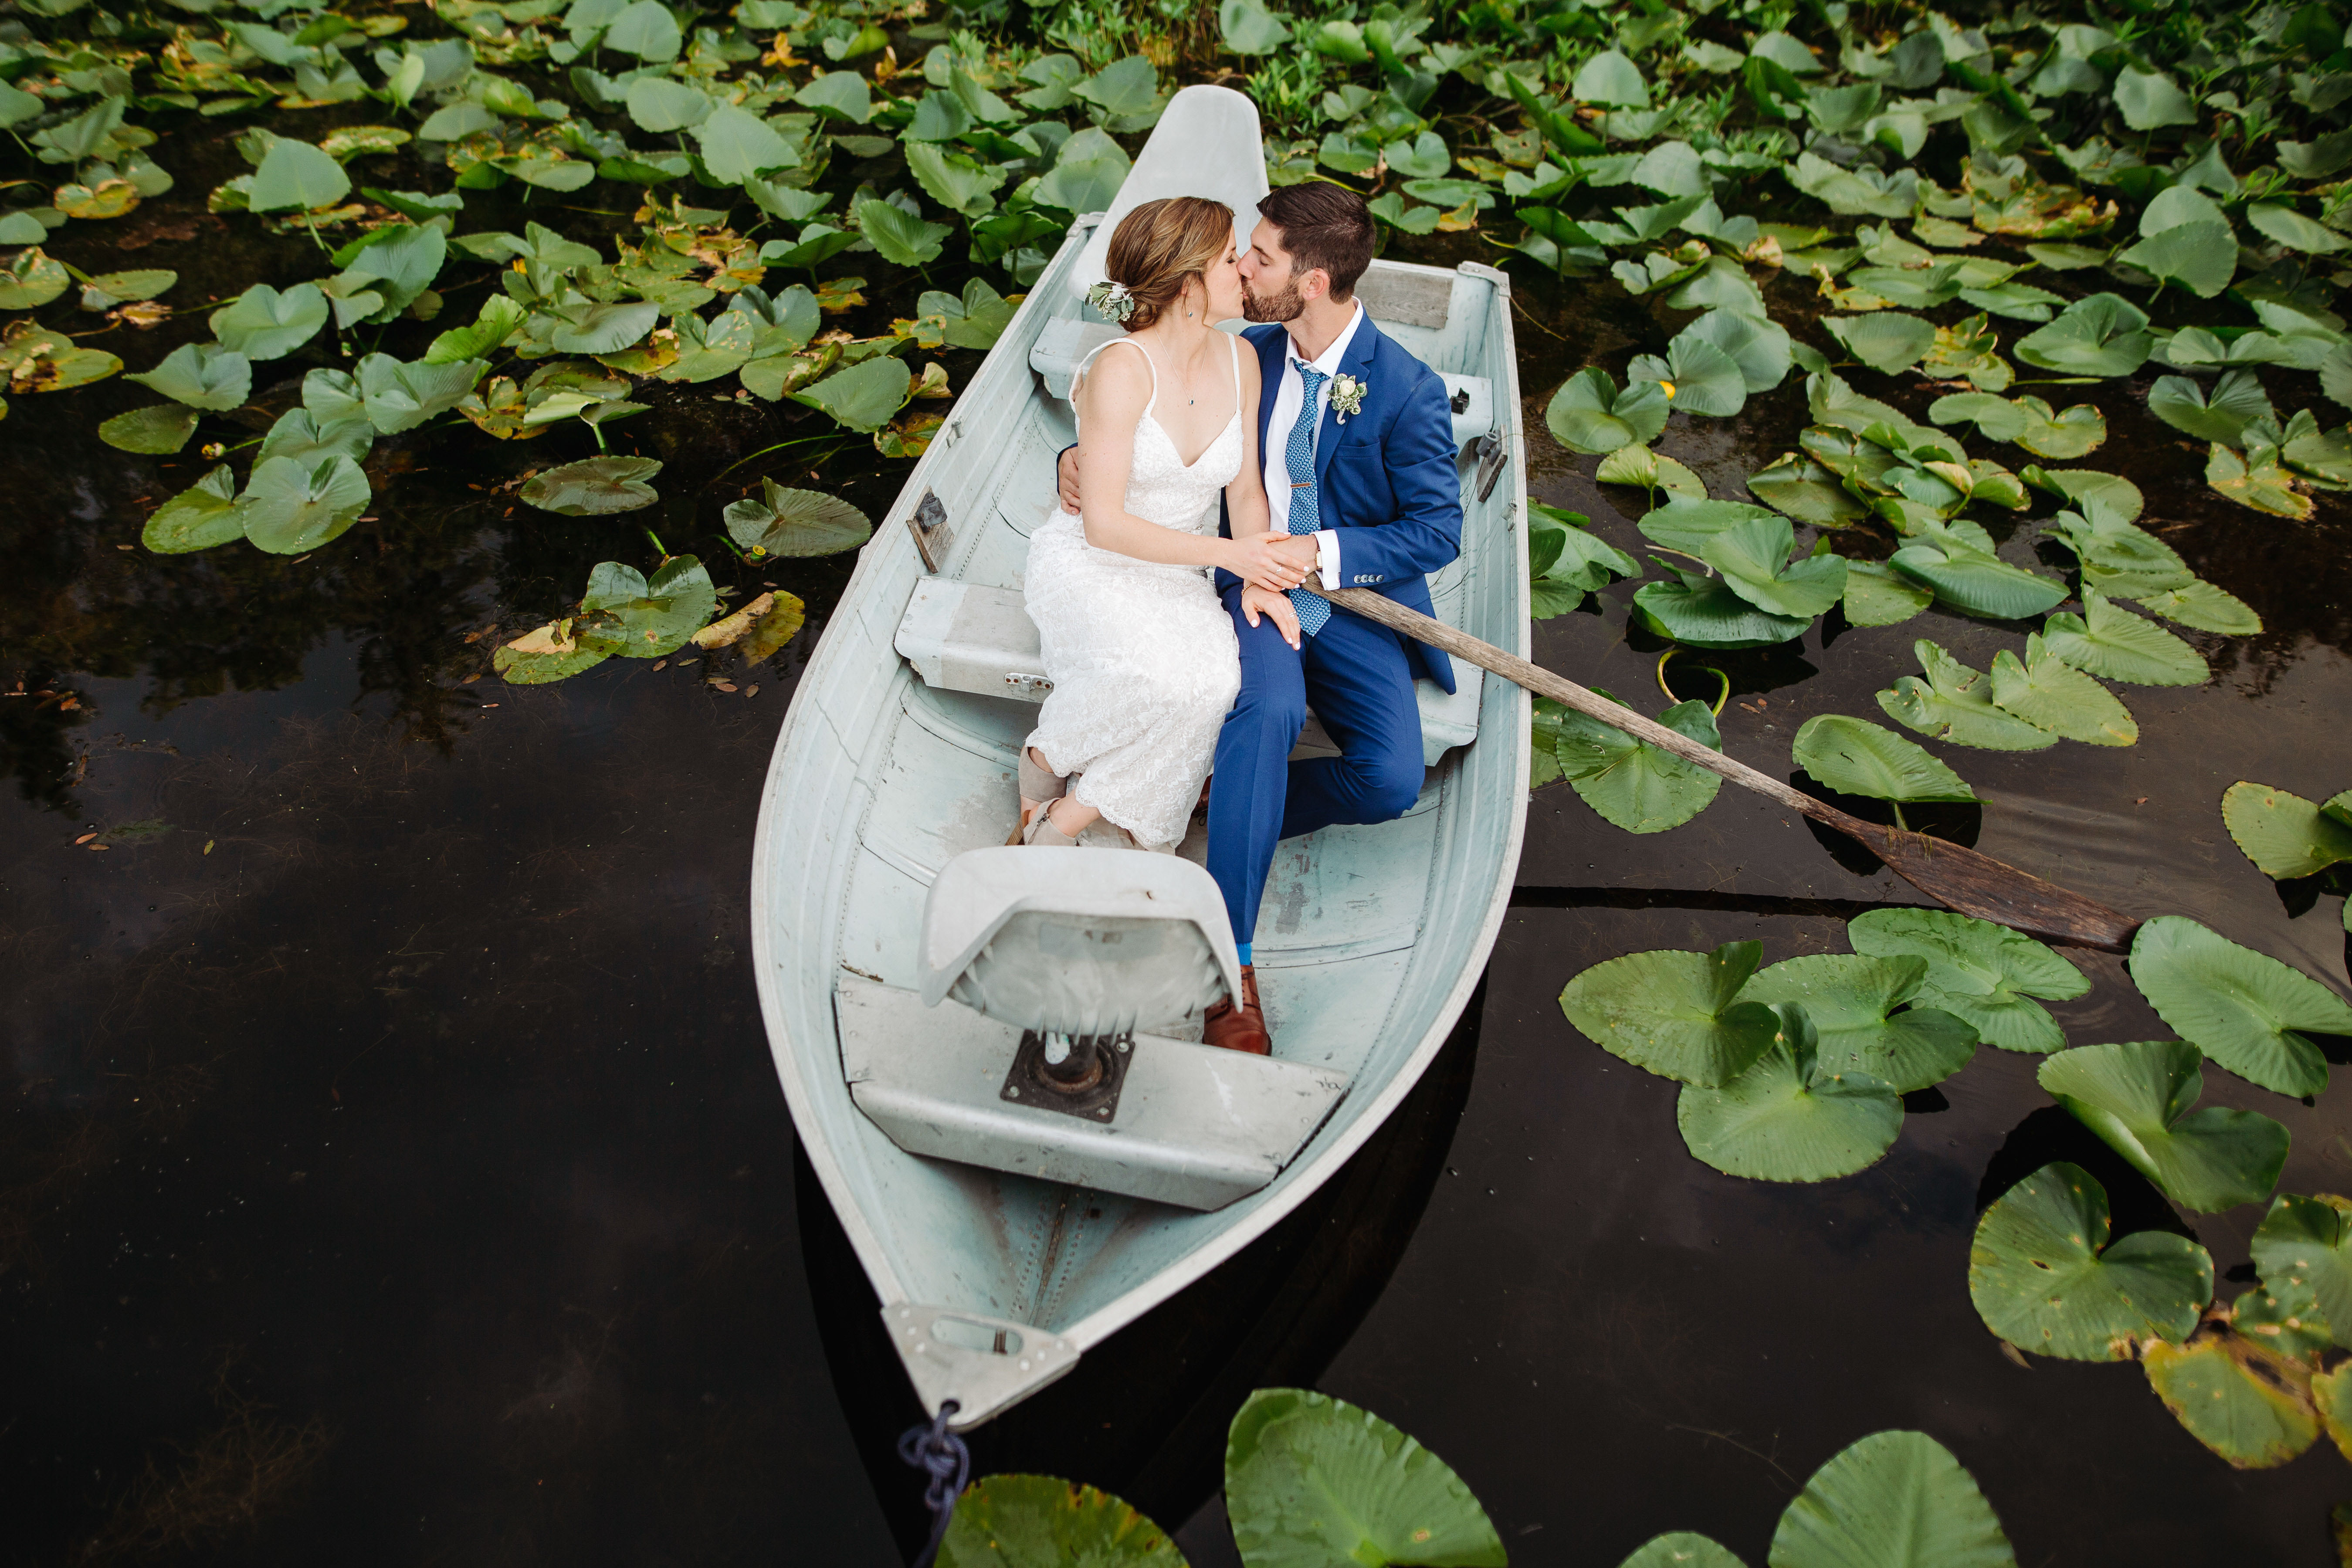 Bride and groom kissing in rowboat amongst lily pads - photo by Cameron Zegers Photography